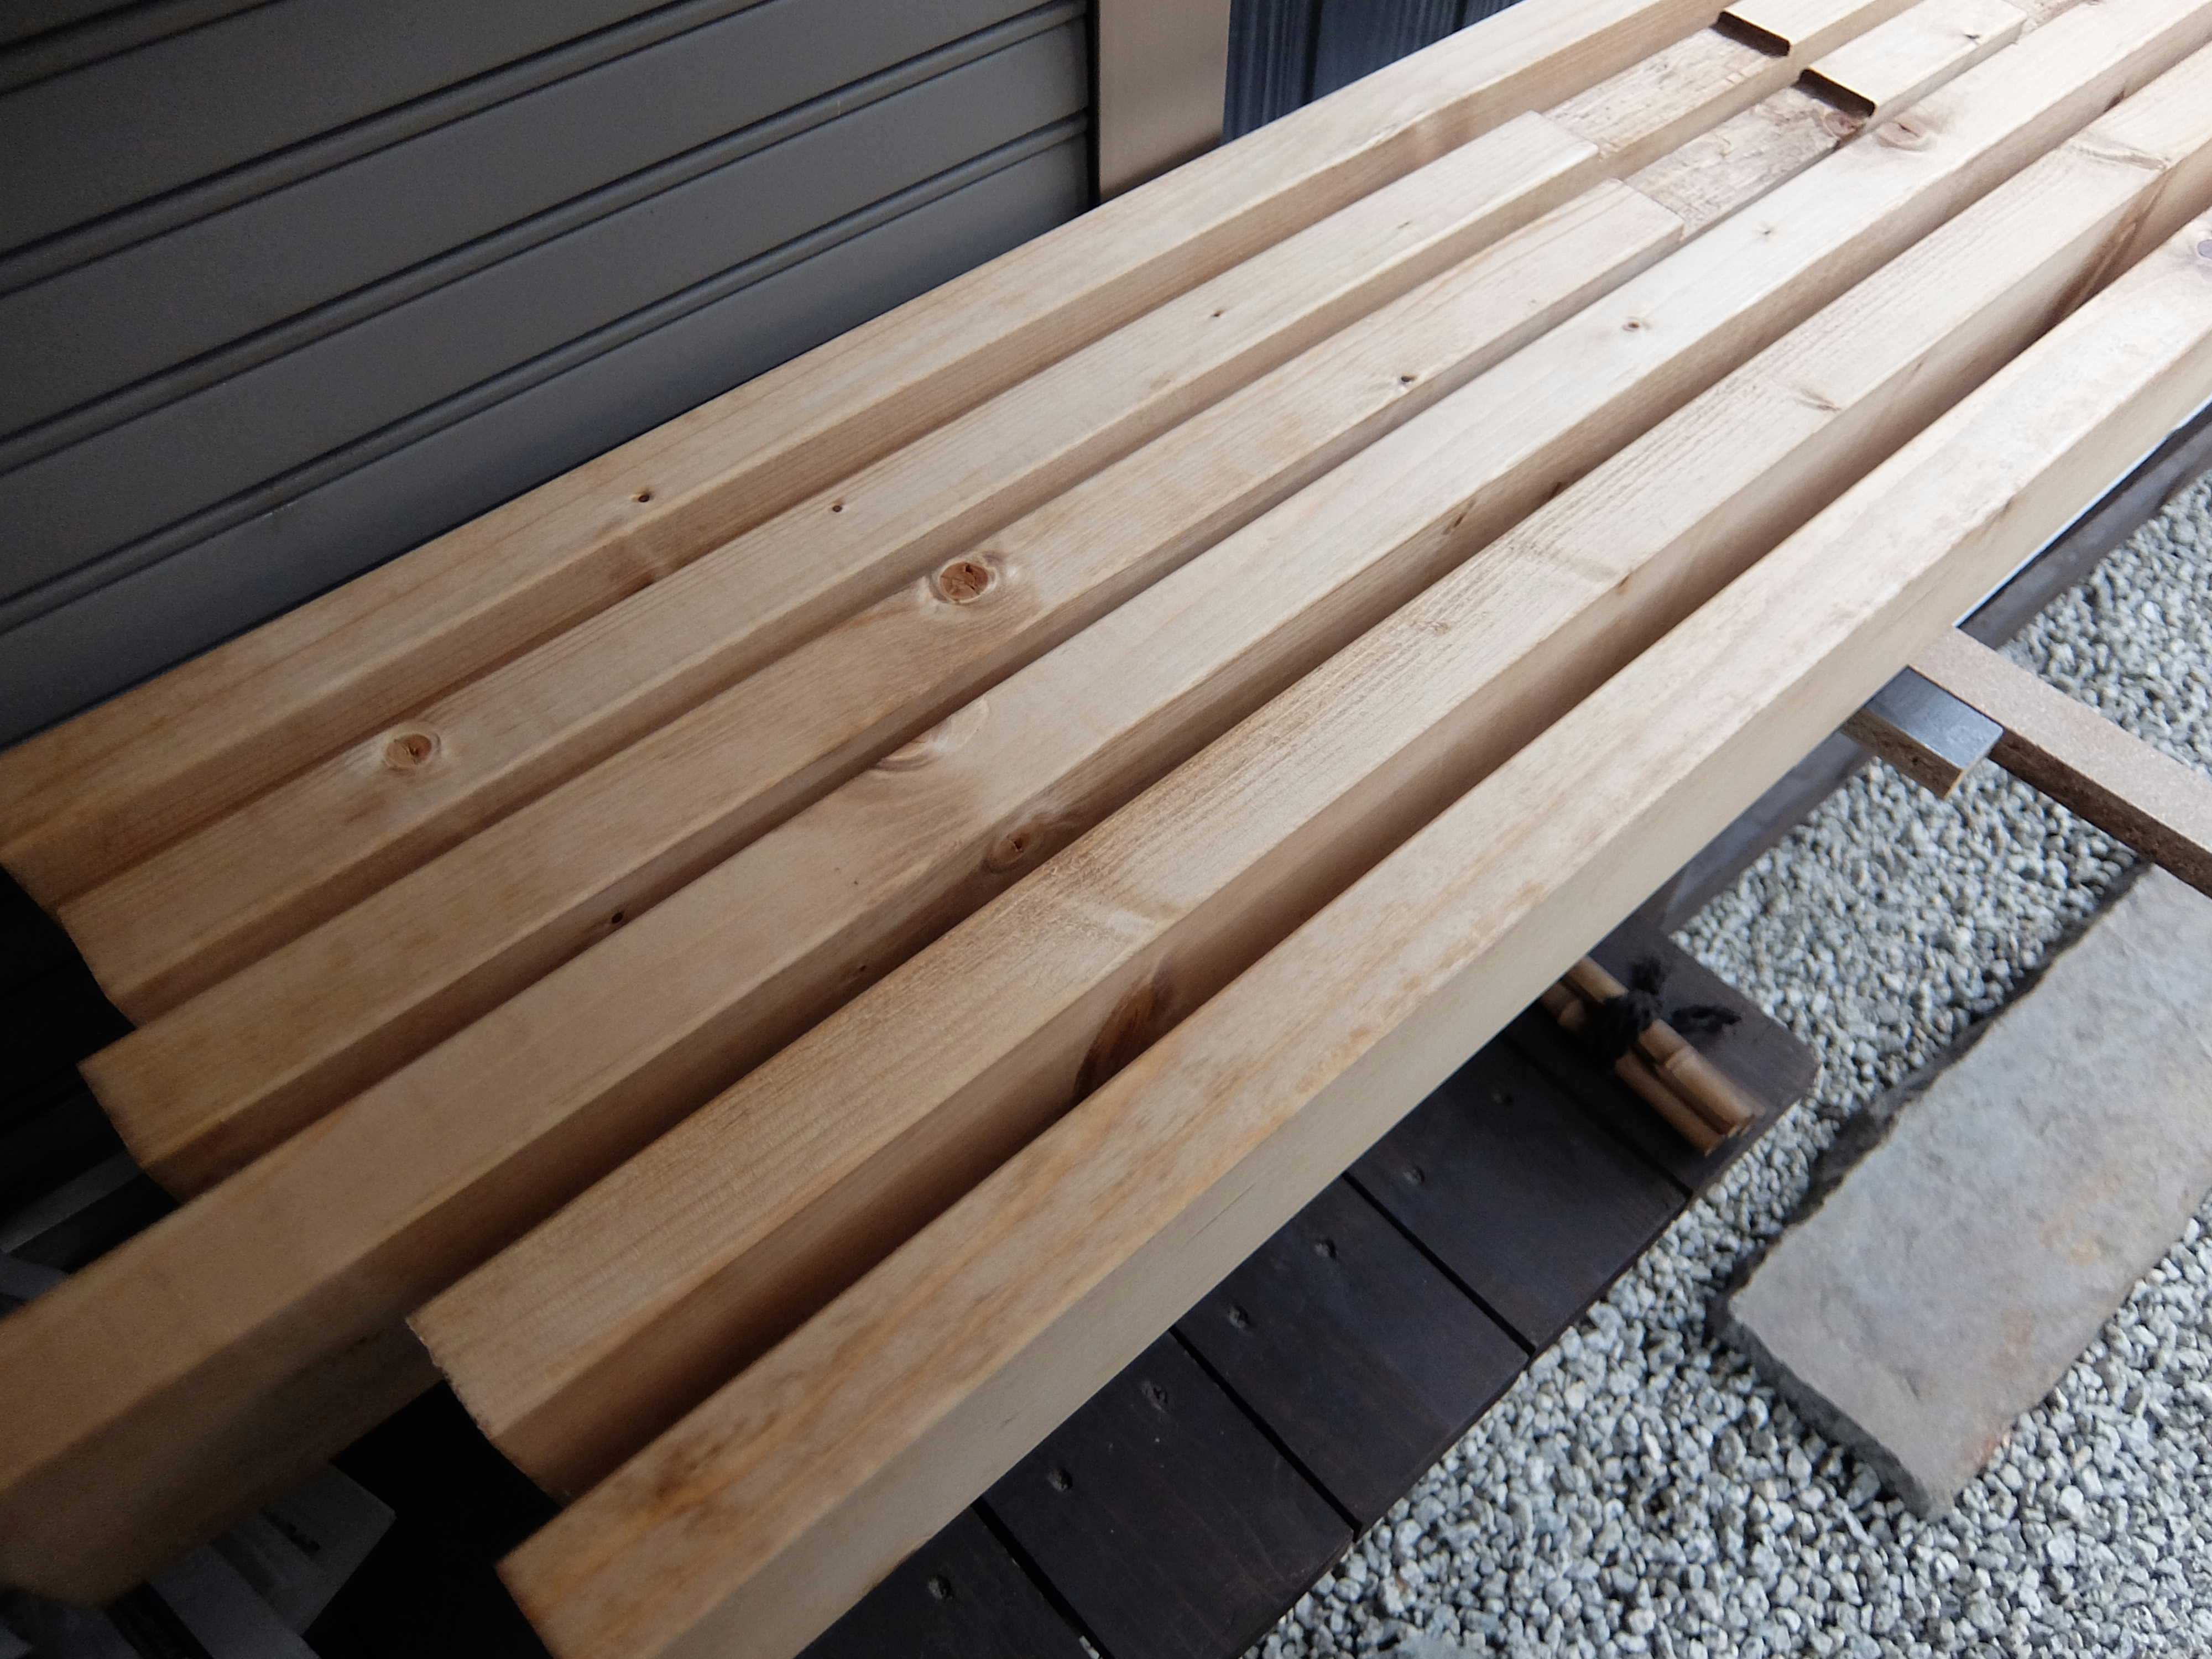 drying-of-watoco-on-2x4